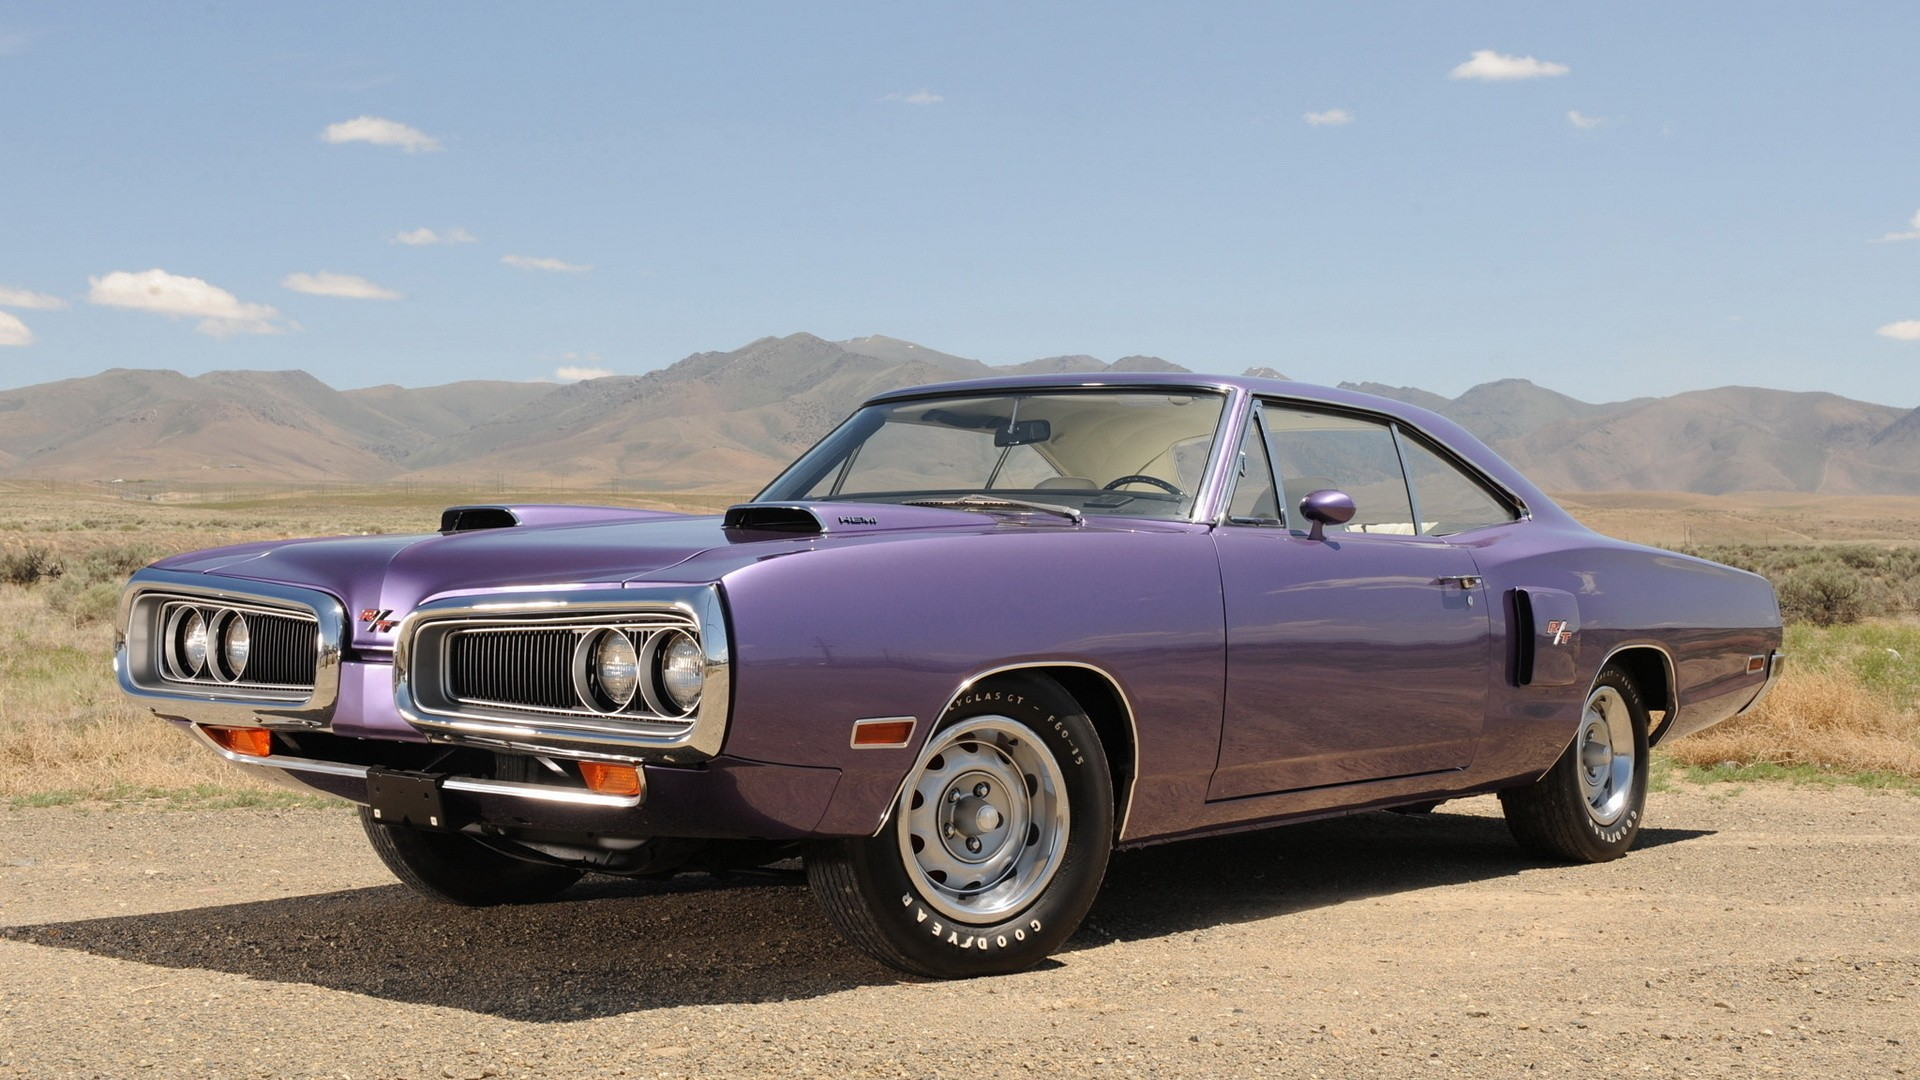 Muscle Cars Wallpaper 1920x1080 Muscle Cars Dodge Coronet R 1920x1080